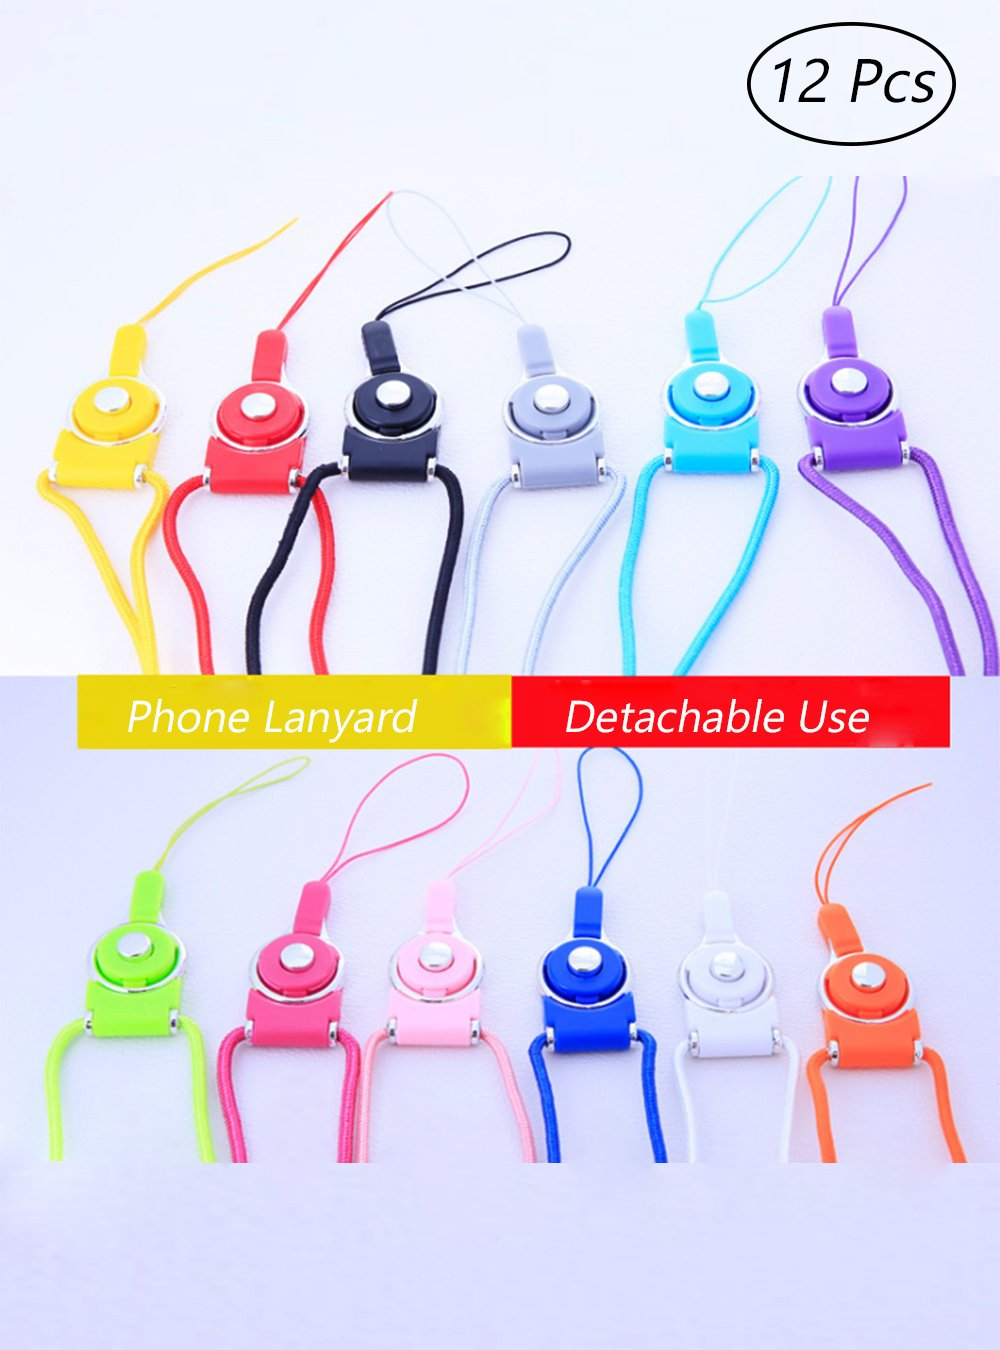 OAIMYY Detachable Cell Phone Long Lanyard Neck Strap for Cell Phone Case/ ID Card Badge/Keychain Charms (12Pcs-Random color)